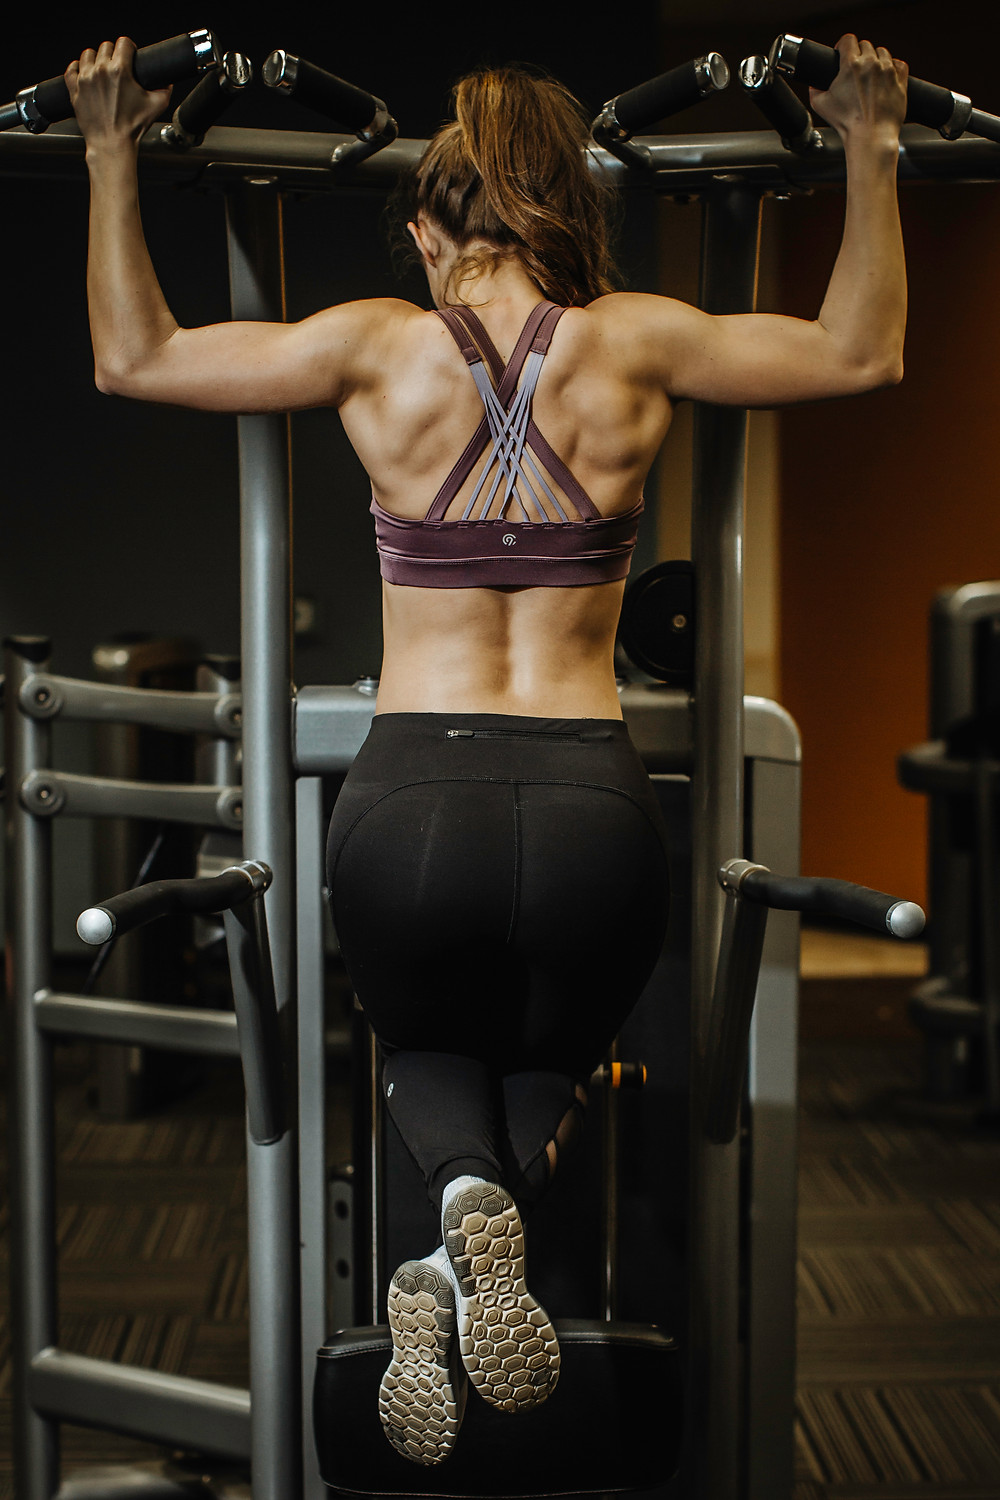 A woman wearing a sports bra and yoga pants is pulling up on an exercise machine with both hands.